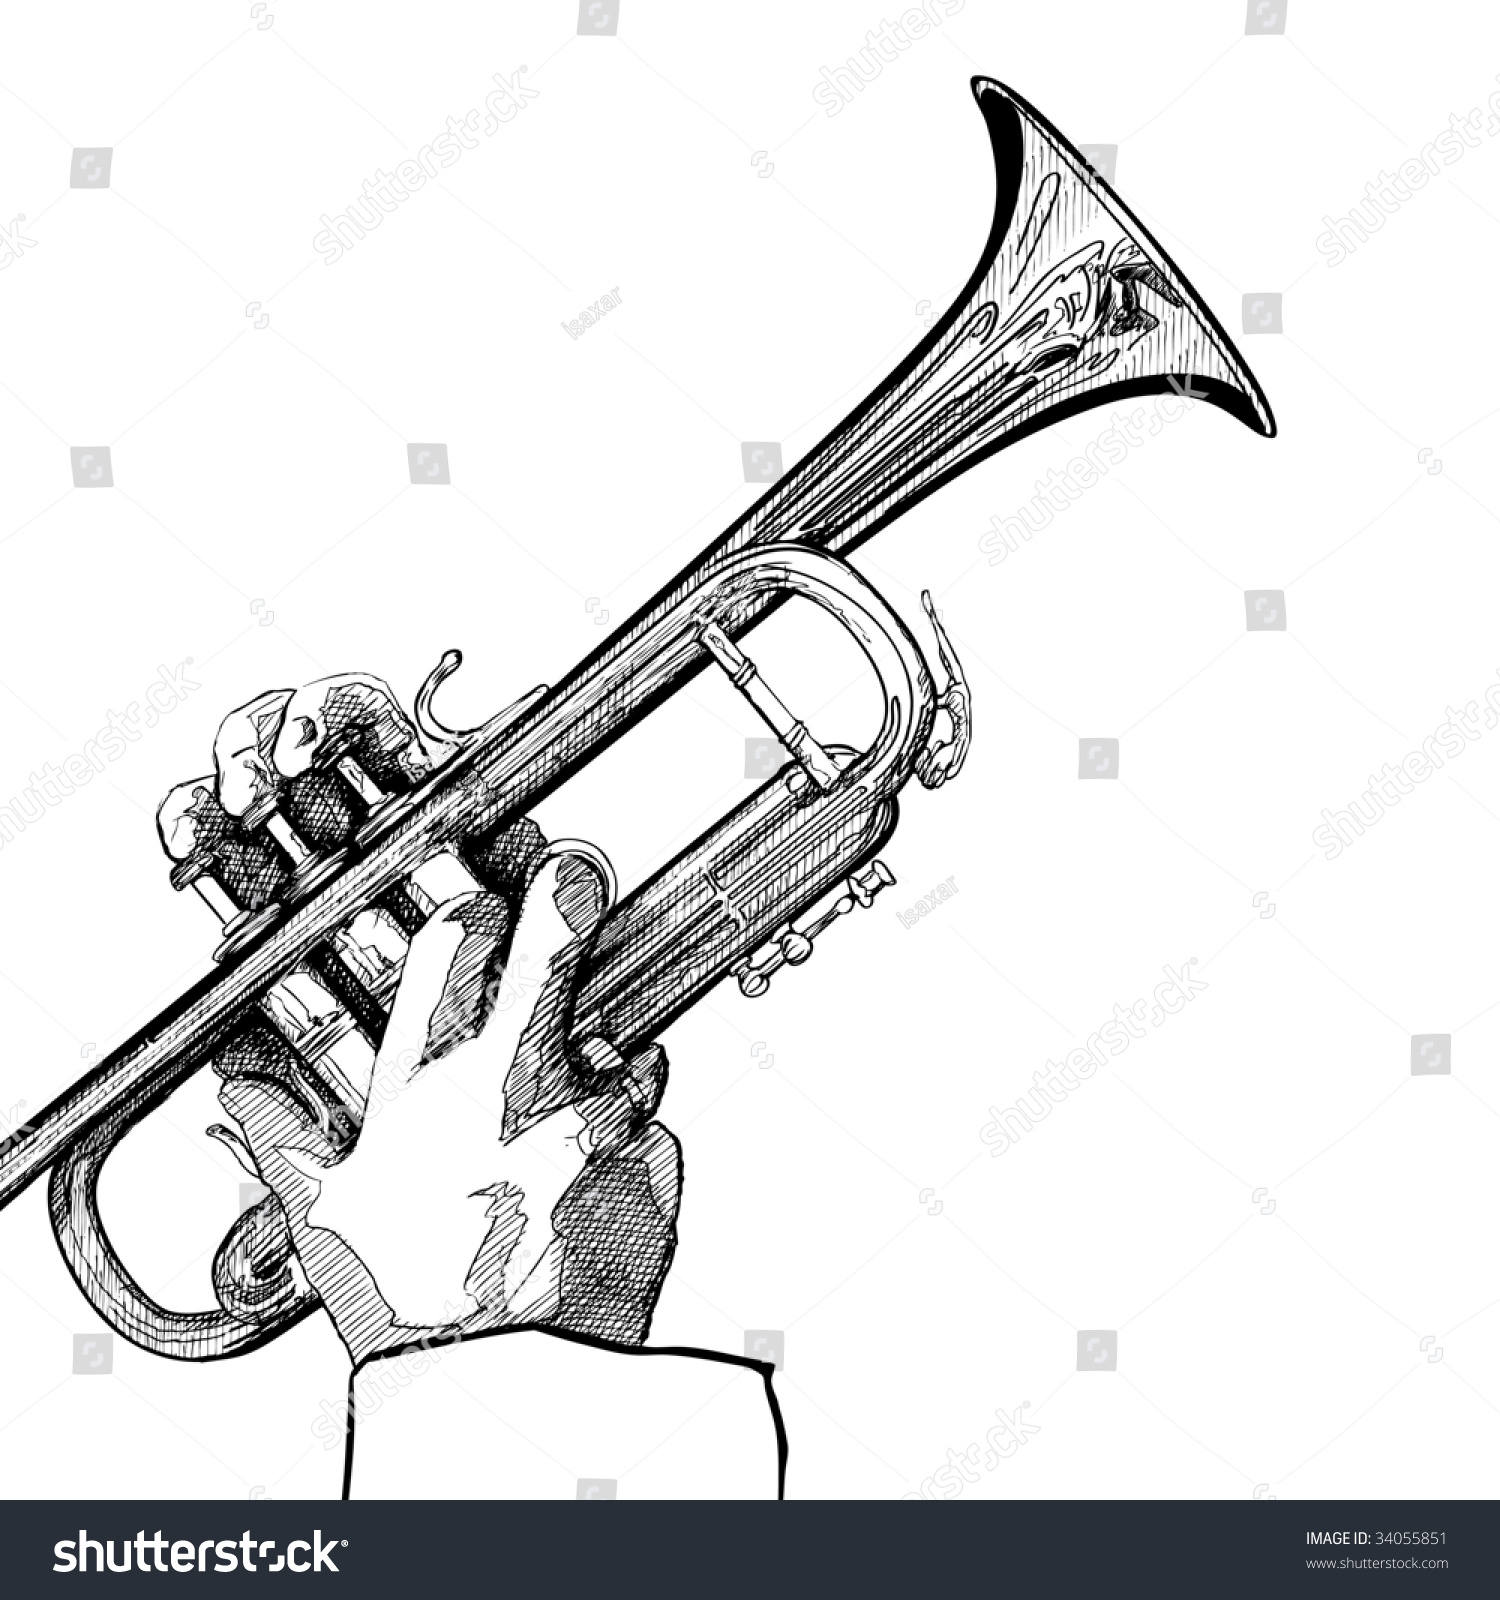 Uncategorized Drawing Of A Trumpet hand drawing vector illustration trumpet on stock 34055851 of a white background